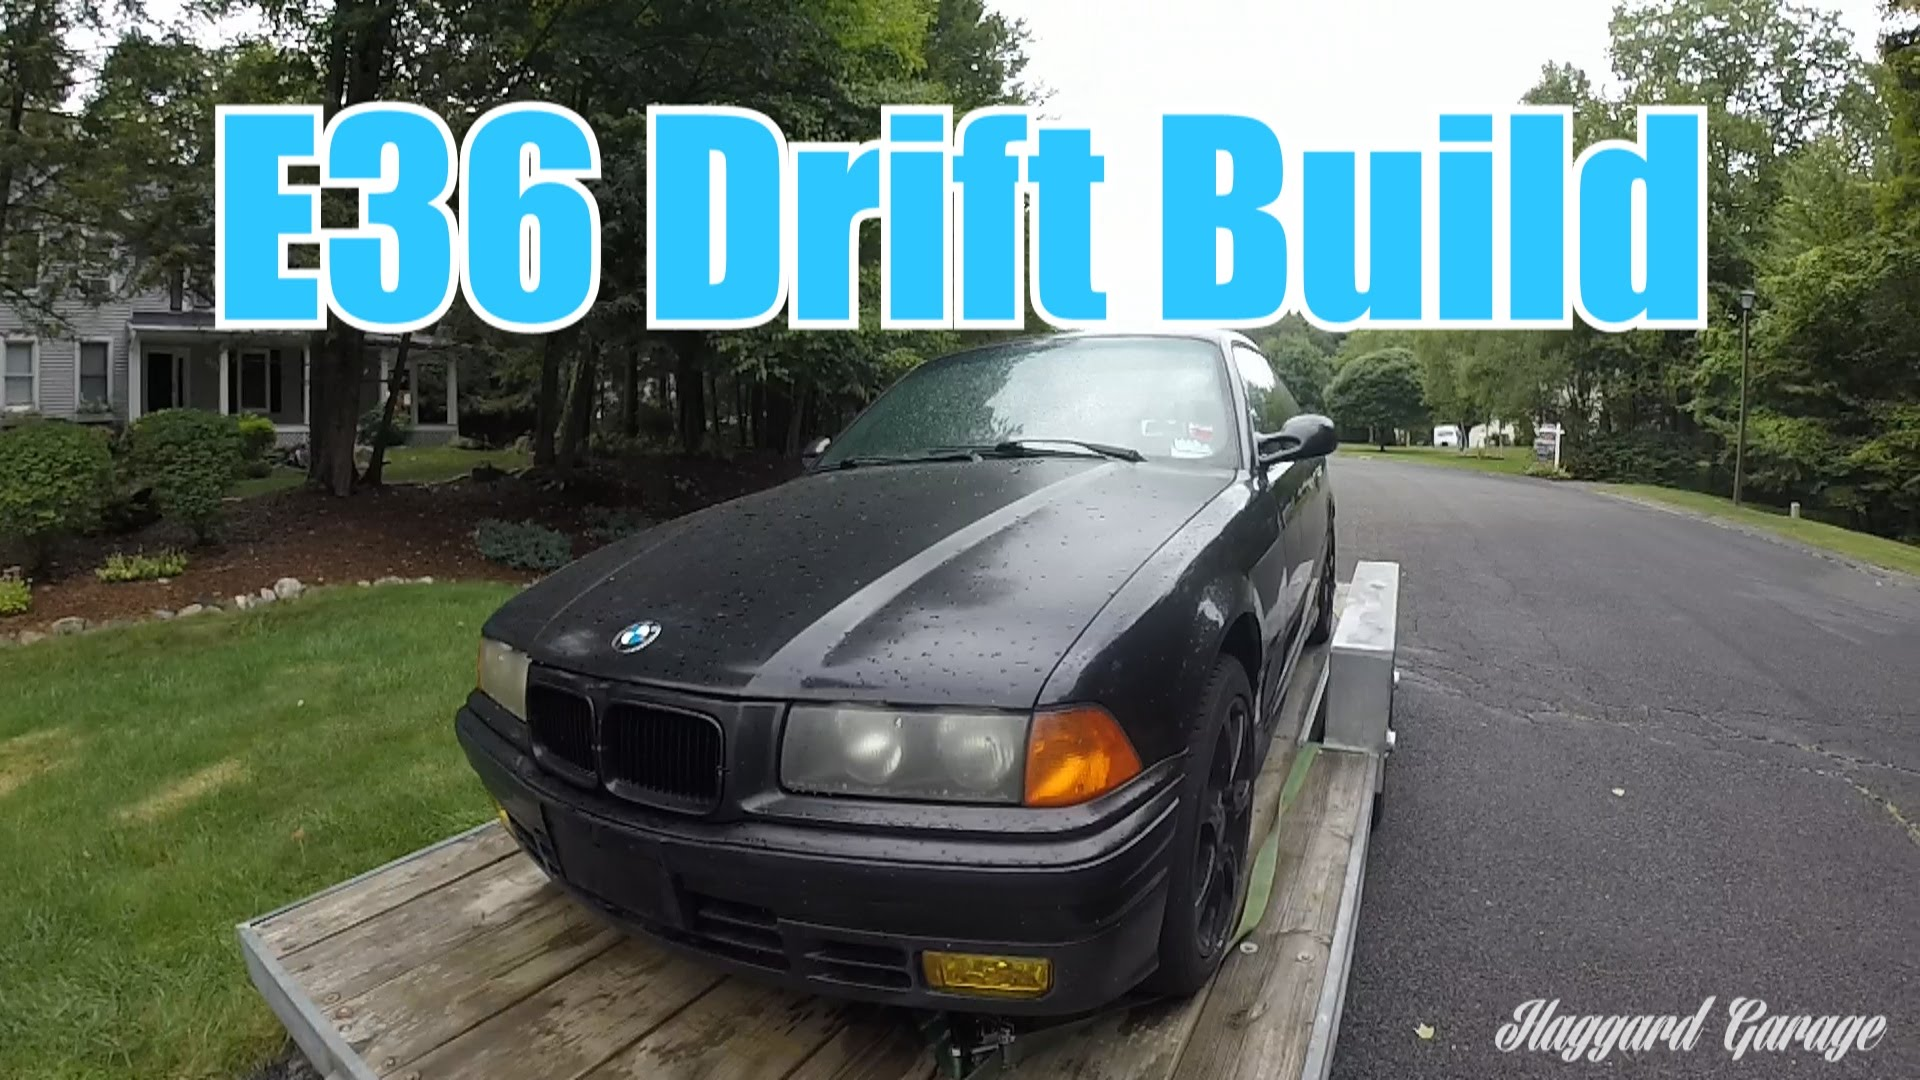 Get A Look At This Sweet E36 Budget Drift Build